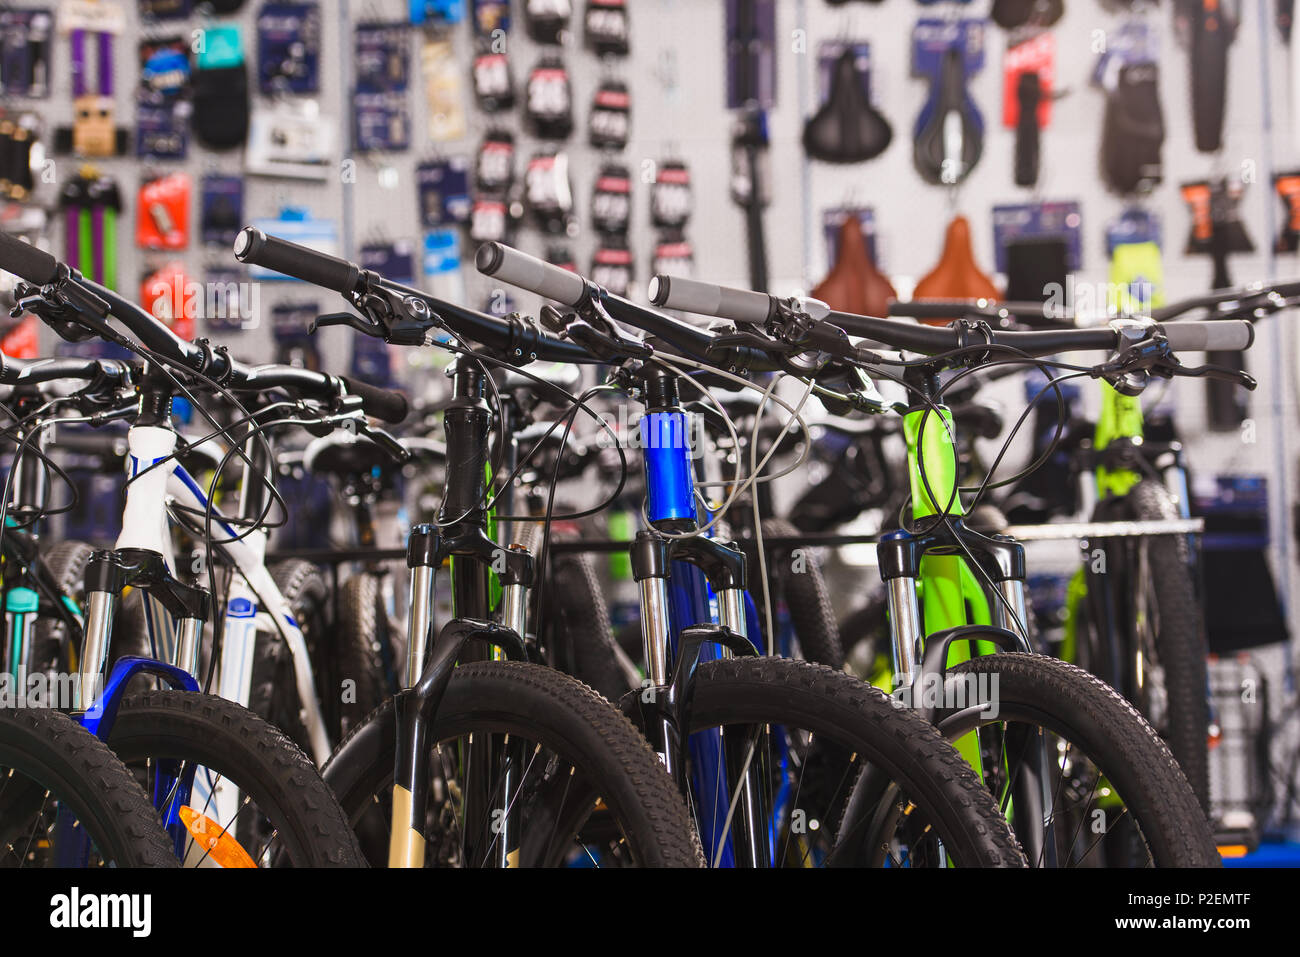 new modern bikes selling in bicycle shop - Stock Image